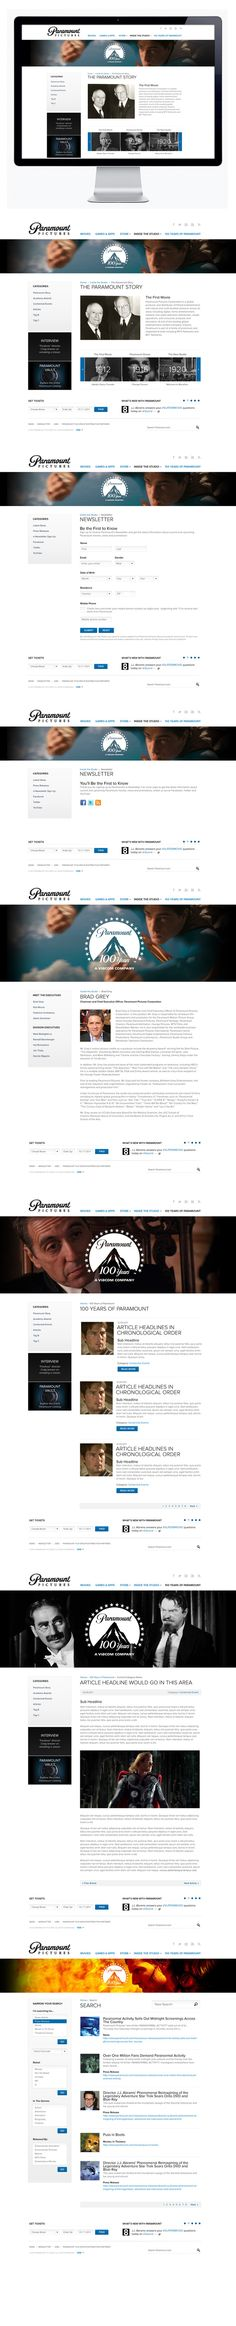 Paramount by Moosesyrup, via Behance